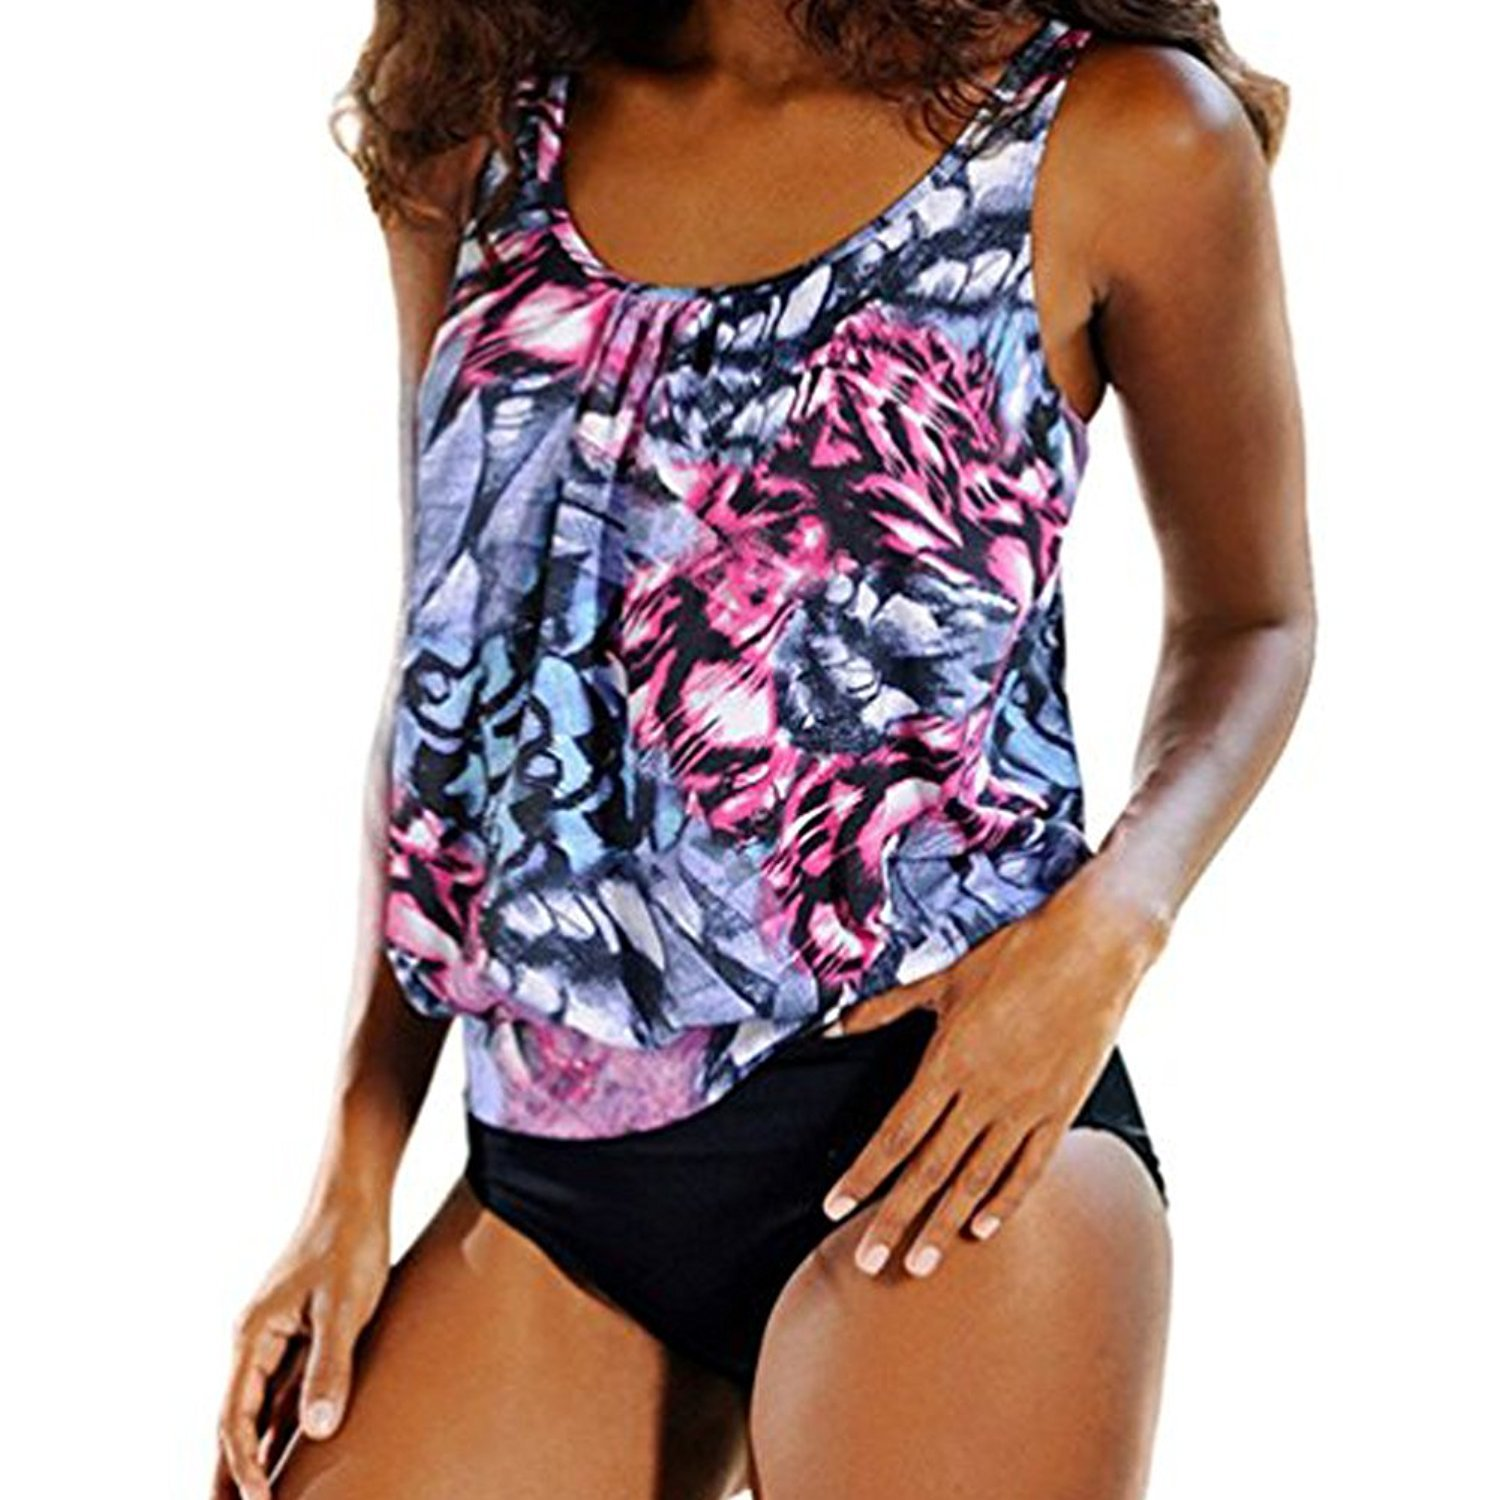 Blivener Women Padded Push Up 2 Pieces Tankini Sets Printed Flattering Casual Beachwear CJX117